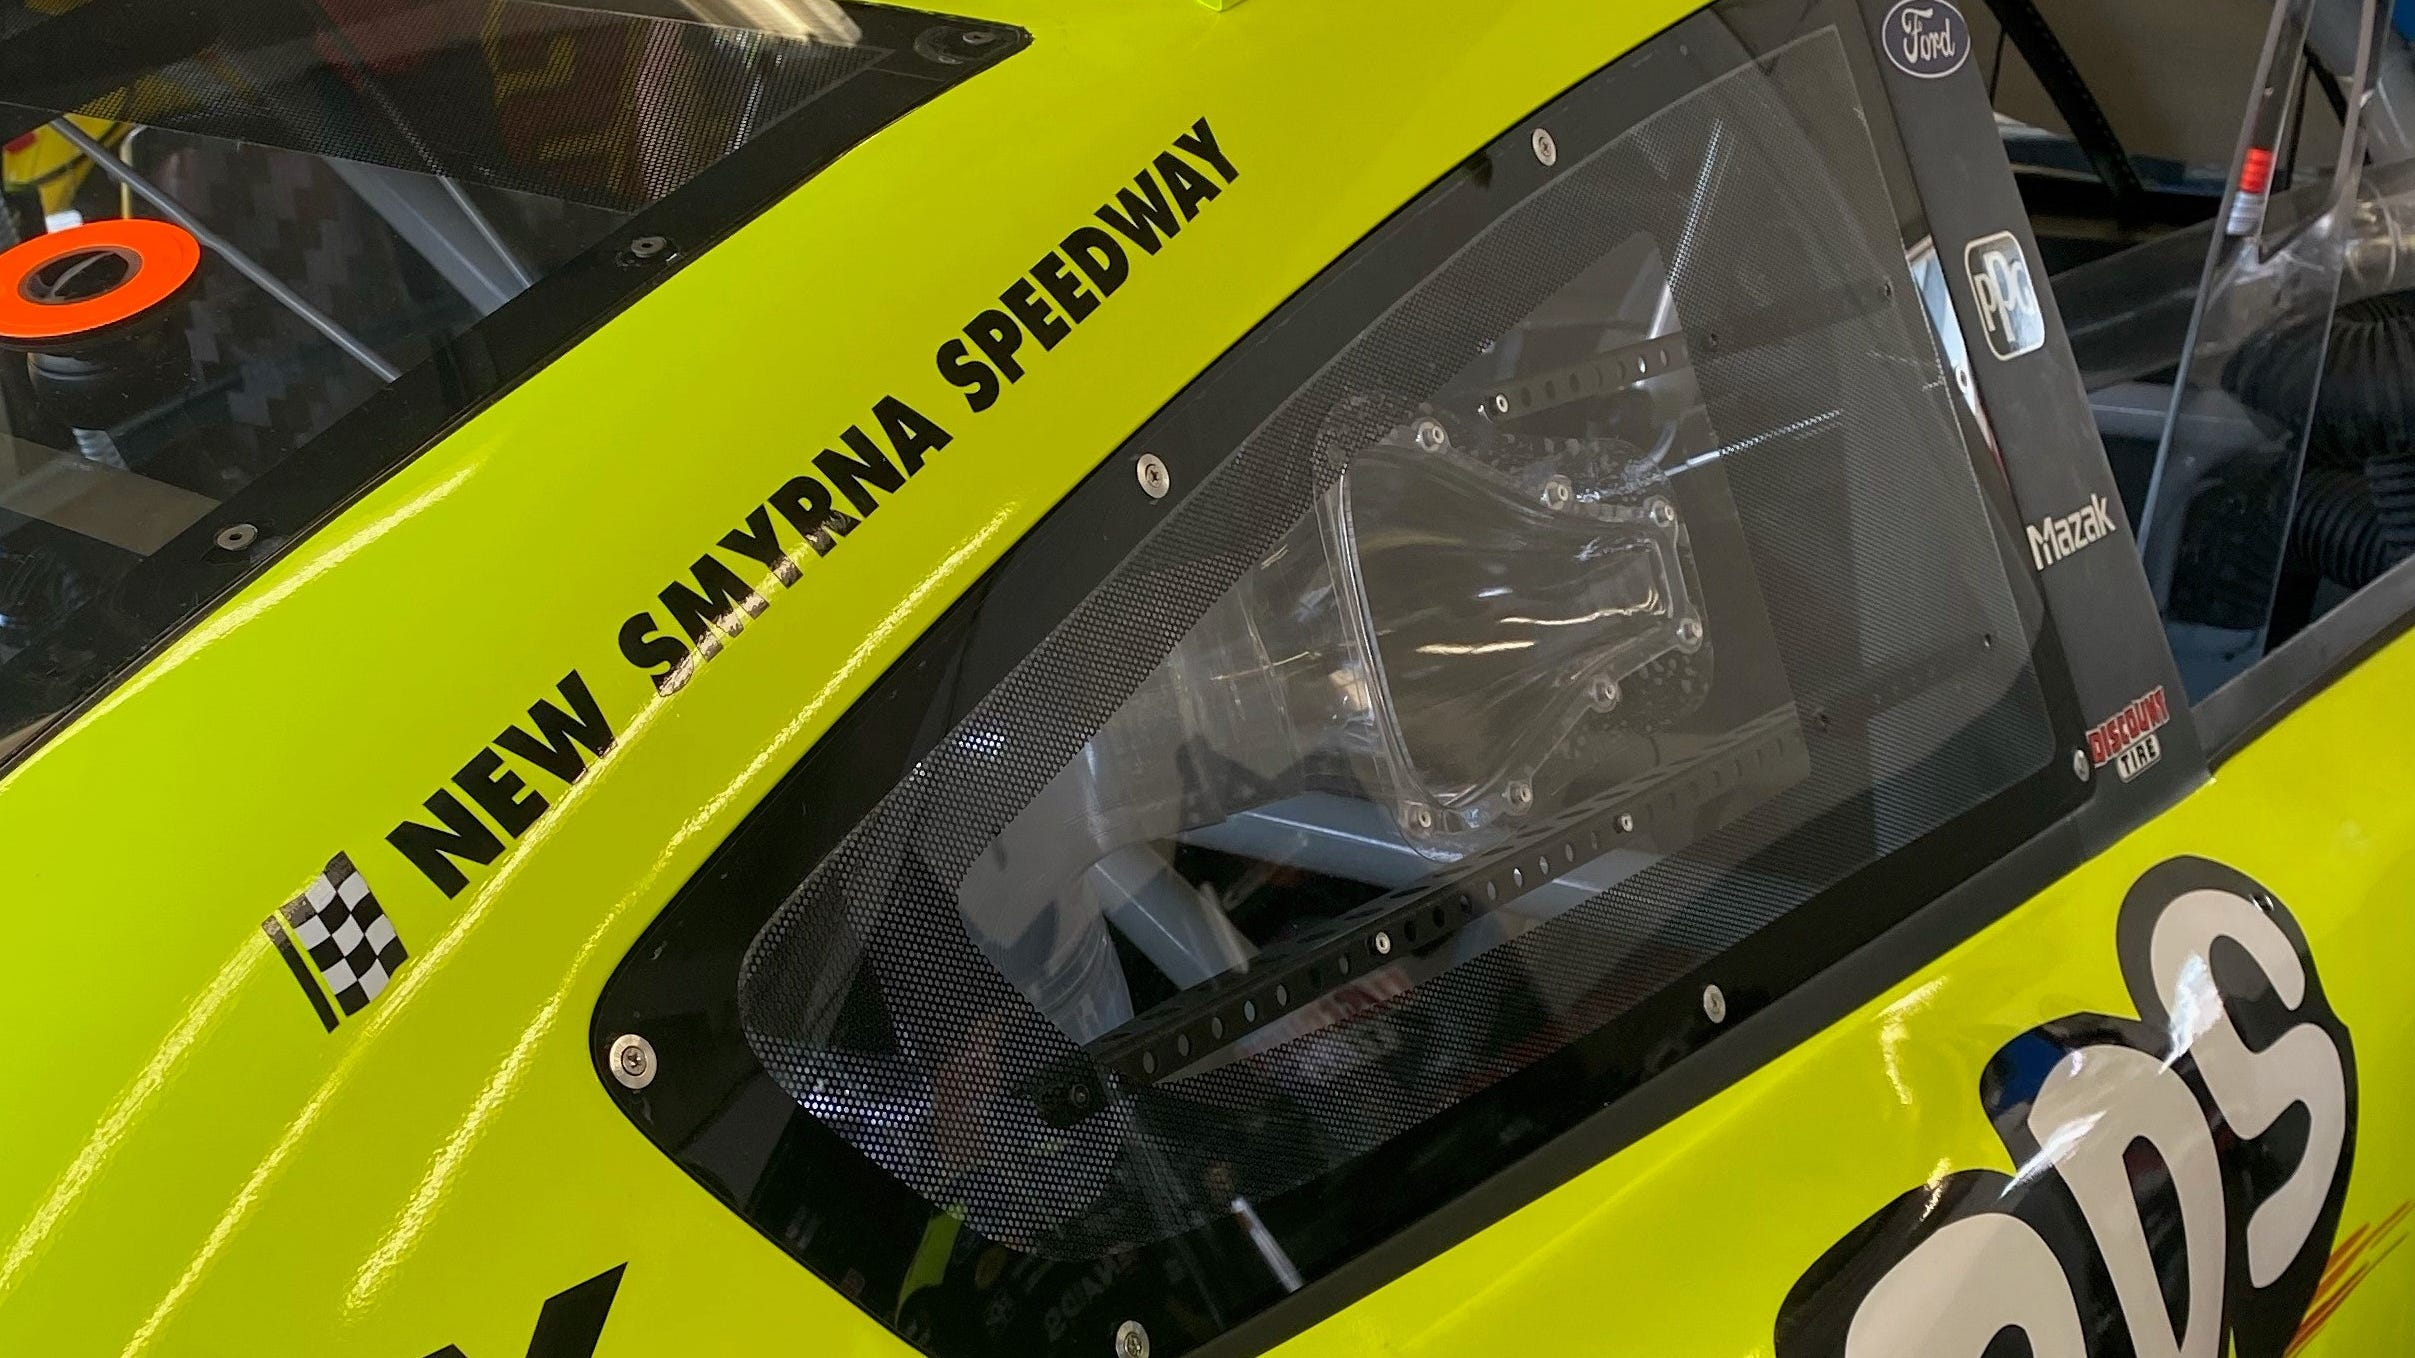 Ryan Blaney's No. 12 Ford featured New Smyrna Speedway on the side at February's Daytona Duel race.